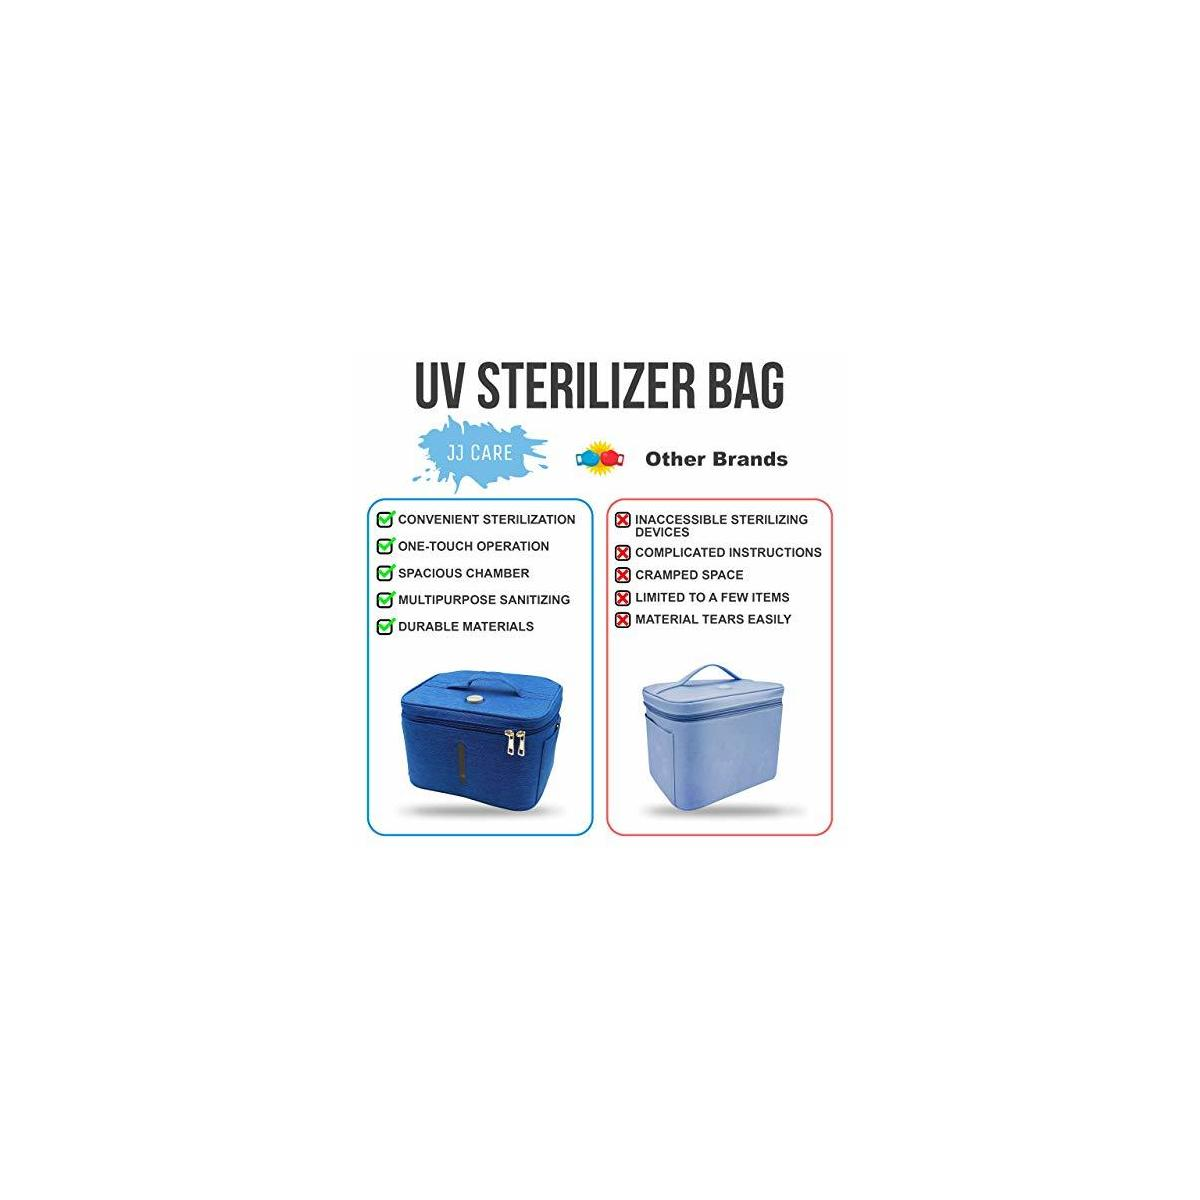 UV Sterilizer Bag, Portable UV Sanitizer Box, Disinfection with LED Light, Baby Bottle UV Sterilizing Bags, Free 5000mah Power Bank,Portable UV Disinfection Box, UV Light Box, 9.85